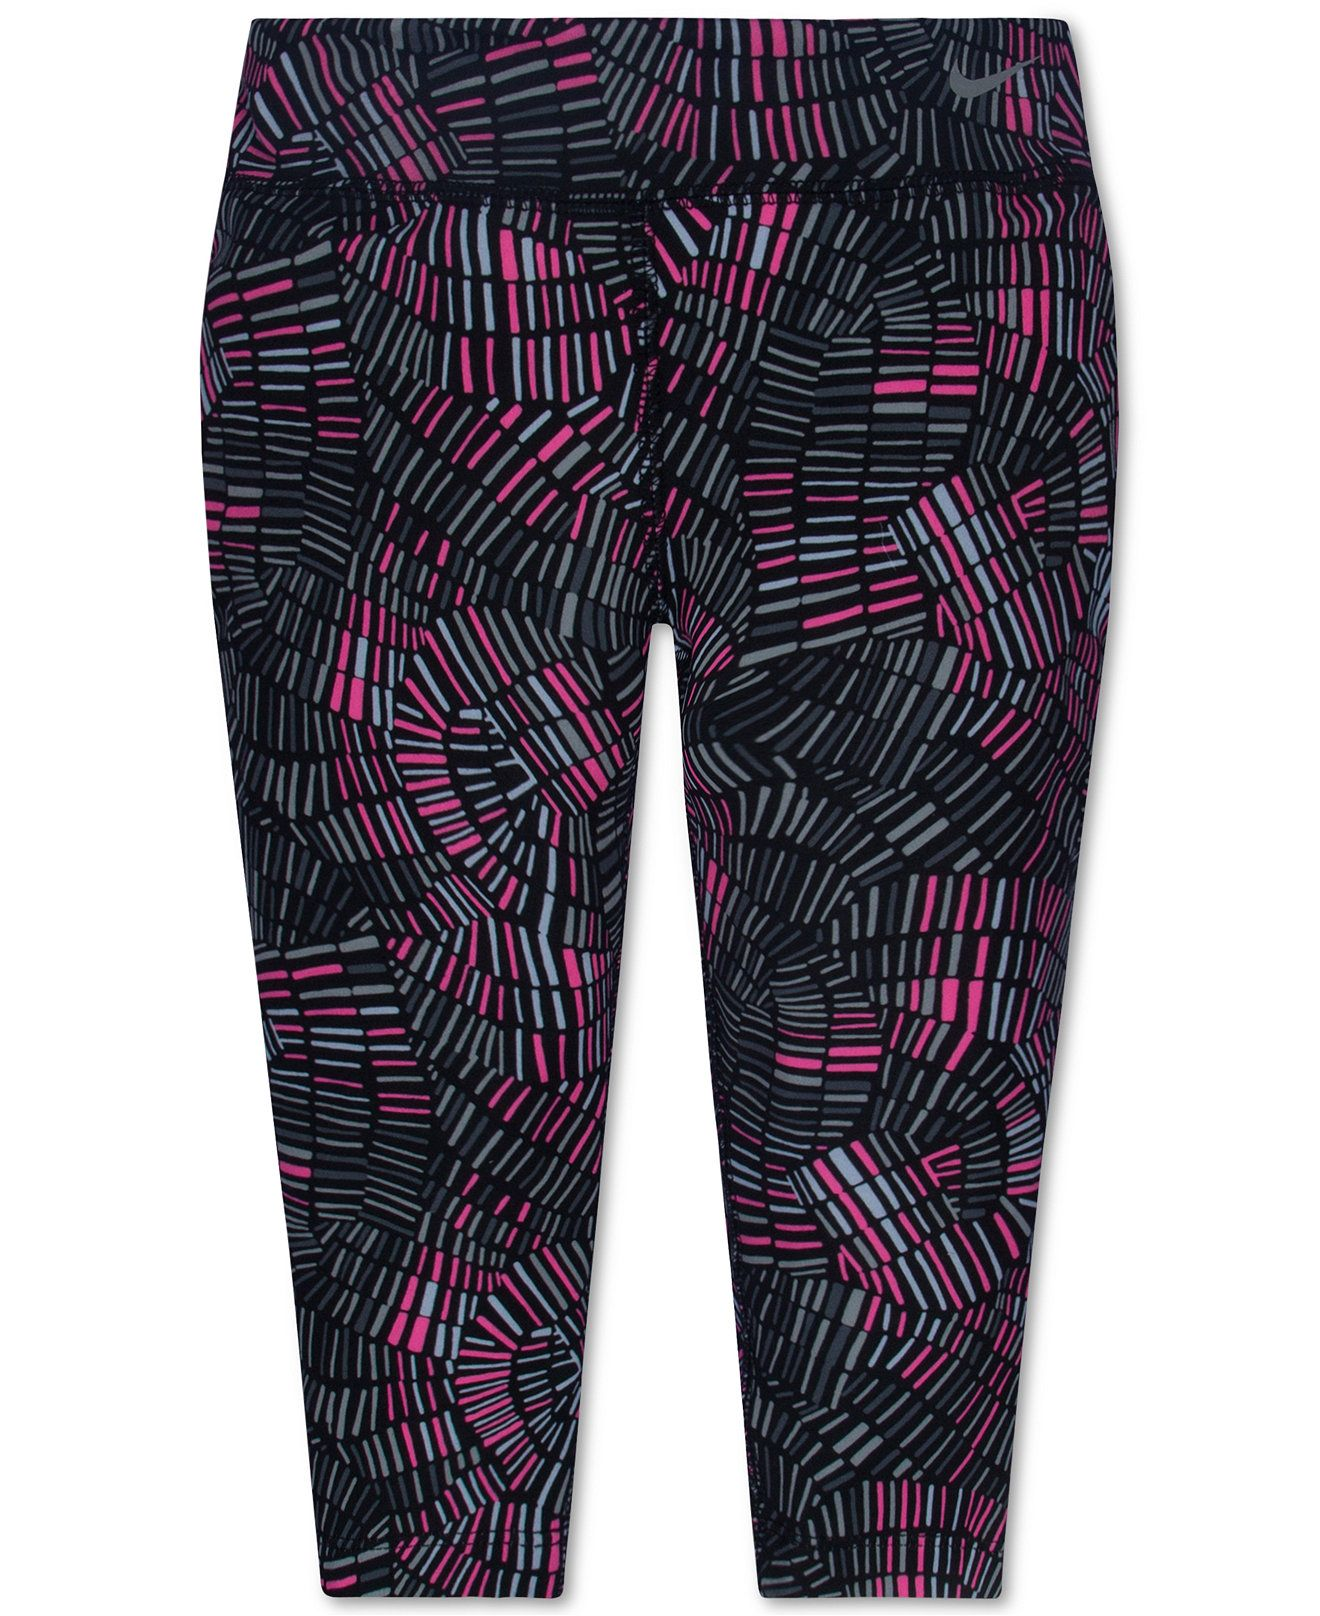 a31090d8e Nike Little Girls' Graphic-Print Athletic Pants - Activewear - Kids & Baby  - Macy's